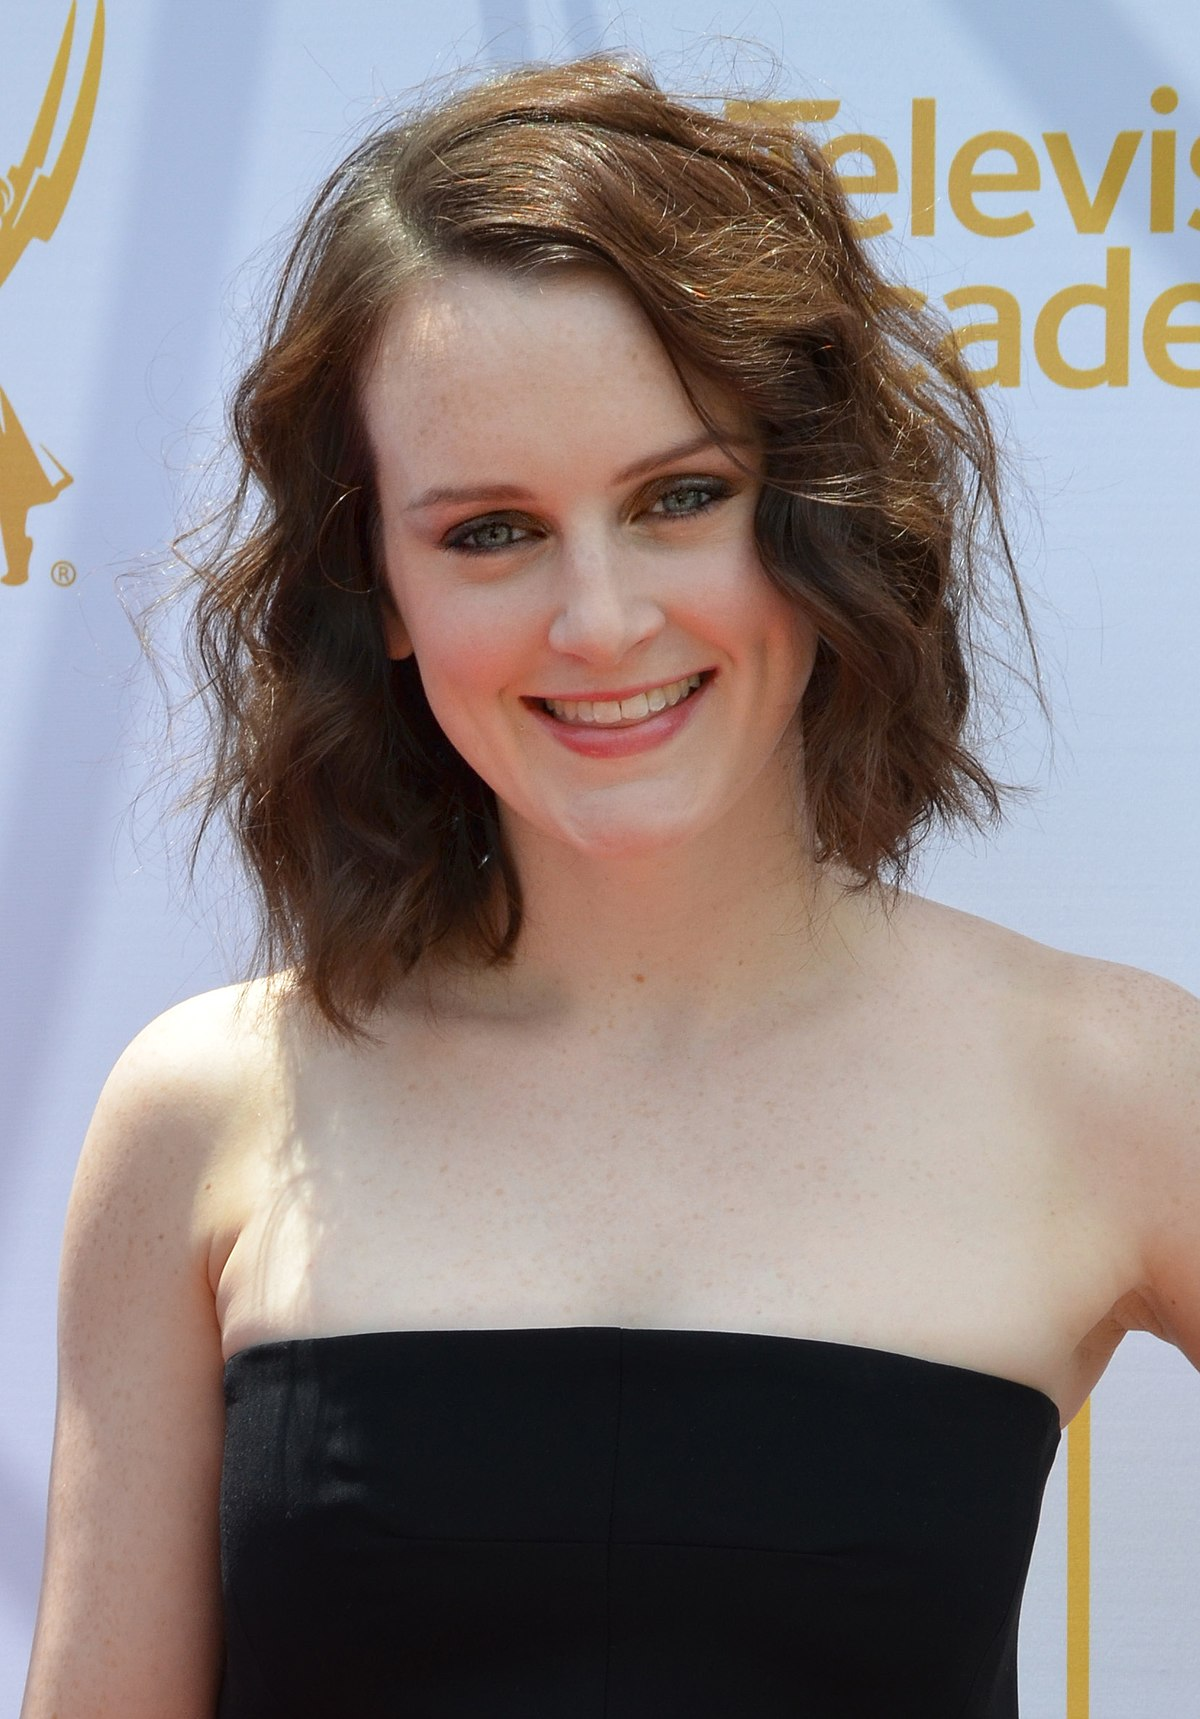 Sophie McShera (born 1985) nude photos 2019